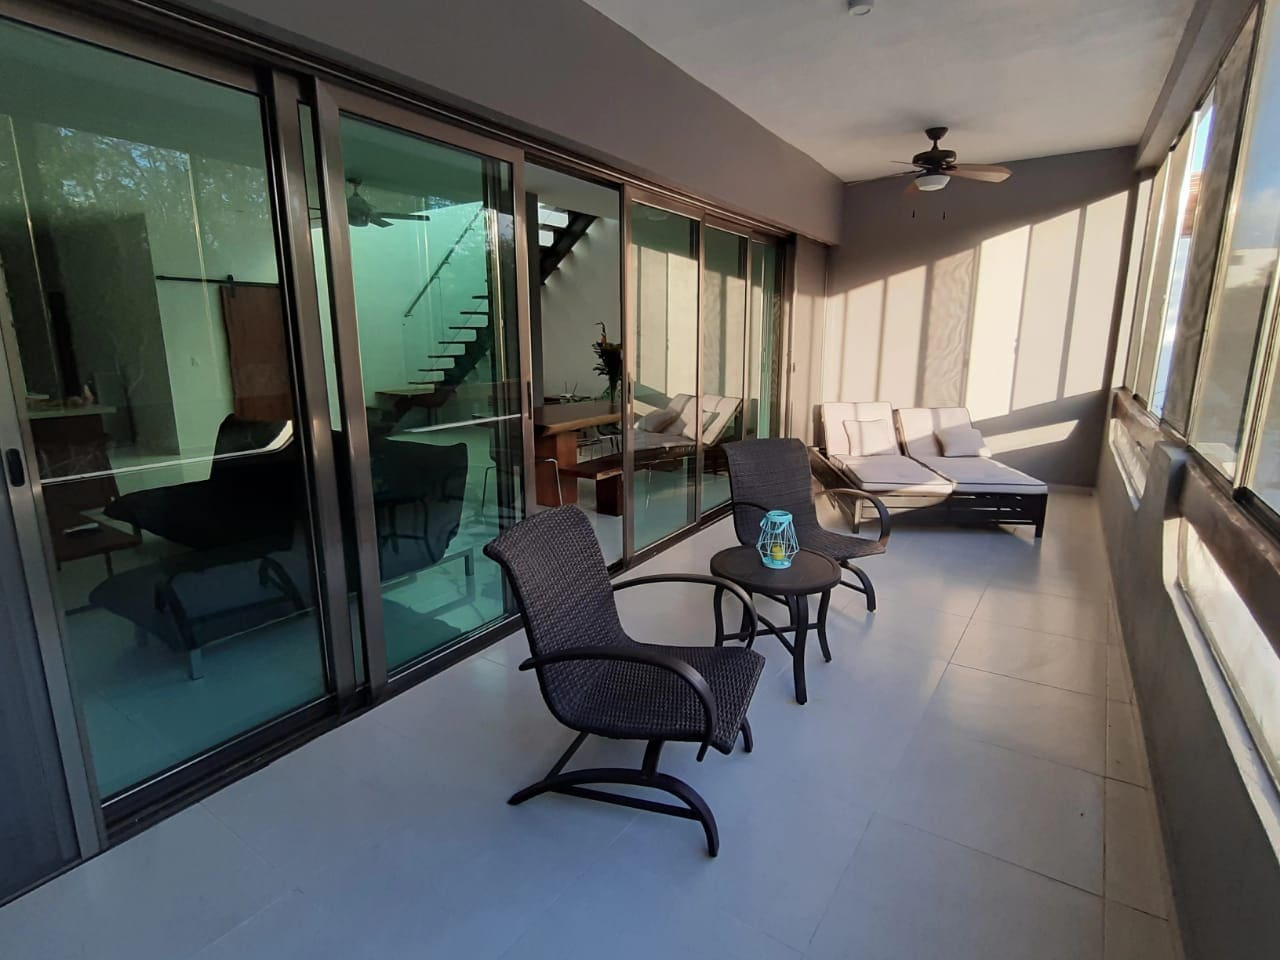 Another view of the over-sized balcony. The balcony has two lounge chairs, that are comfortable enough to take delicious nap or enjoy a good book. This inside/outside space is truly one of the best features.